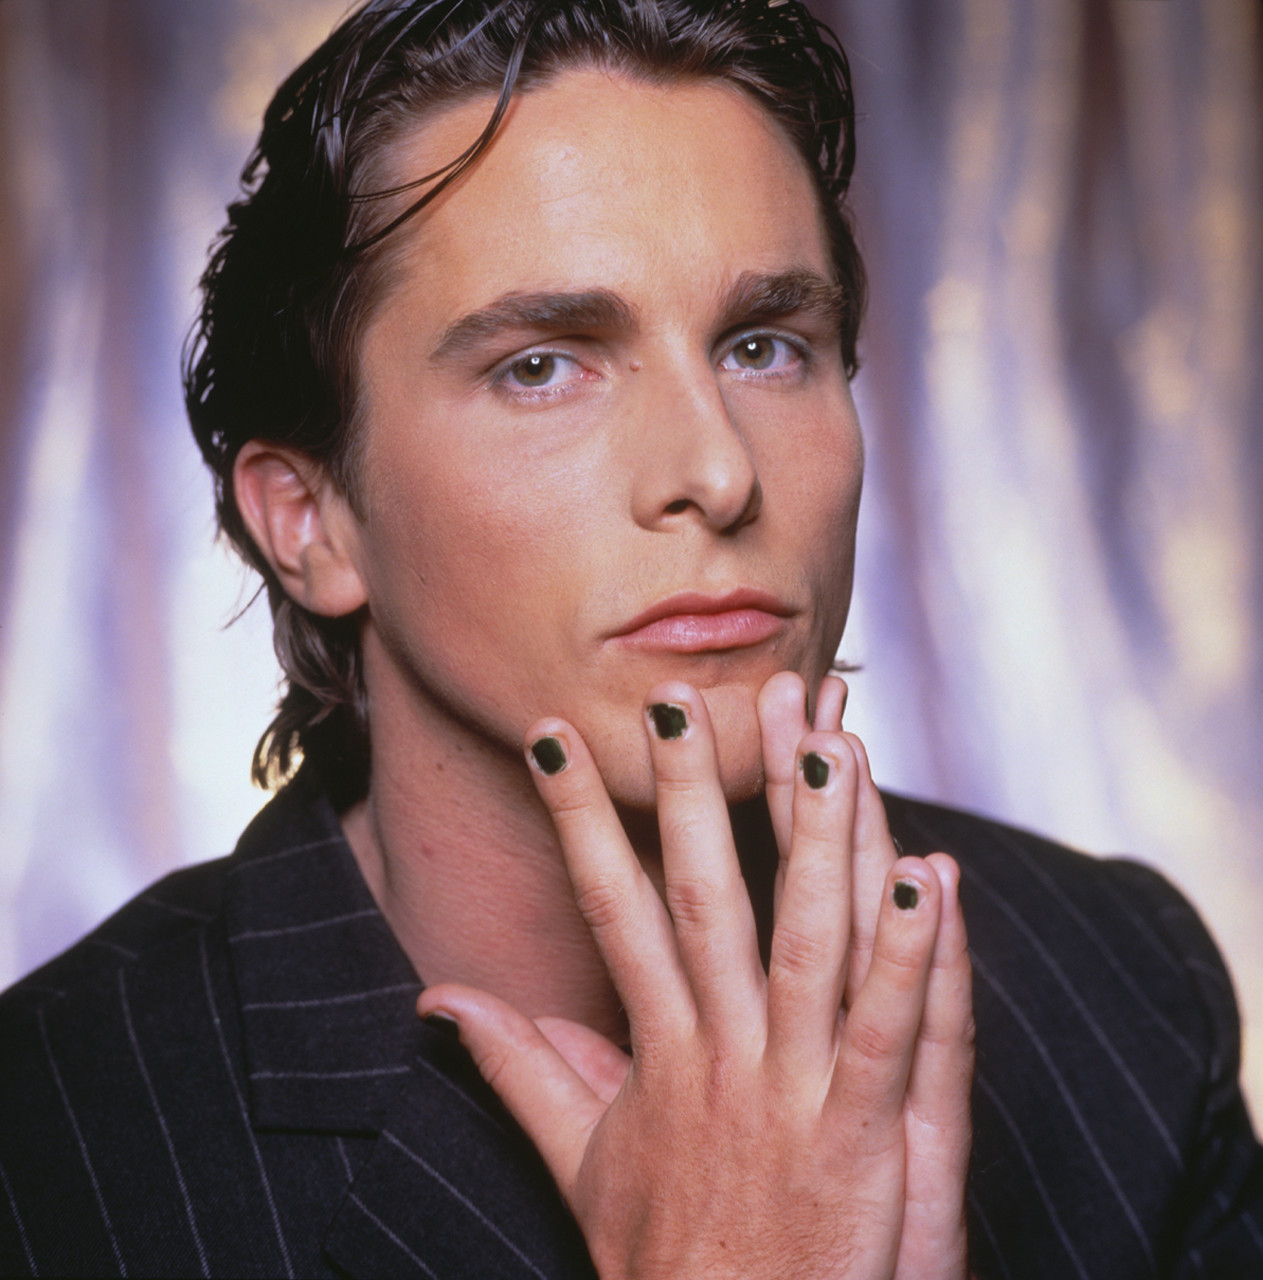 Christian Bale - Whose hands are those?